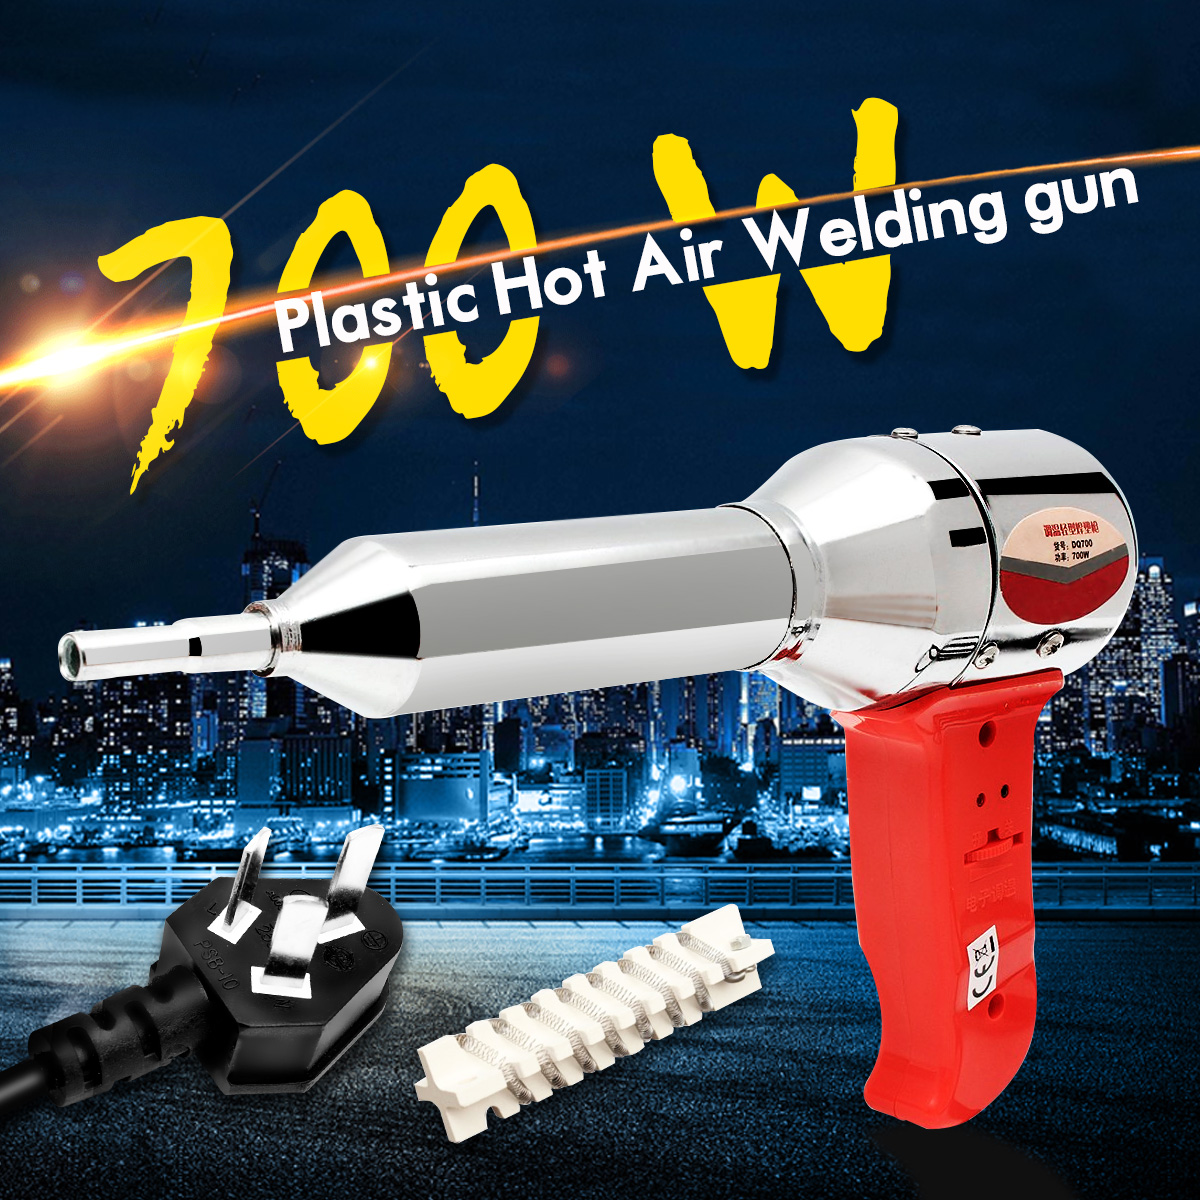 цена на Hot Sale Portable 700W AC 220-240V Red Plastic Hot Air Welding Gun Temperature Heat 100-450 Degree with Ceramic Heater